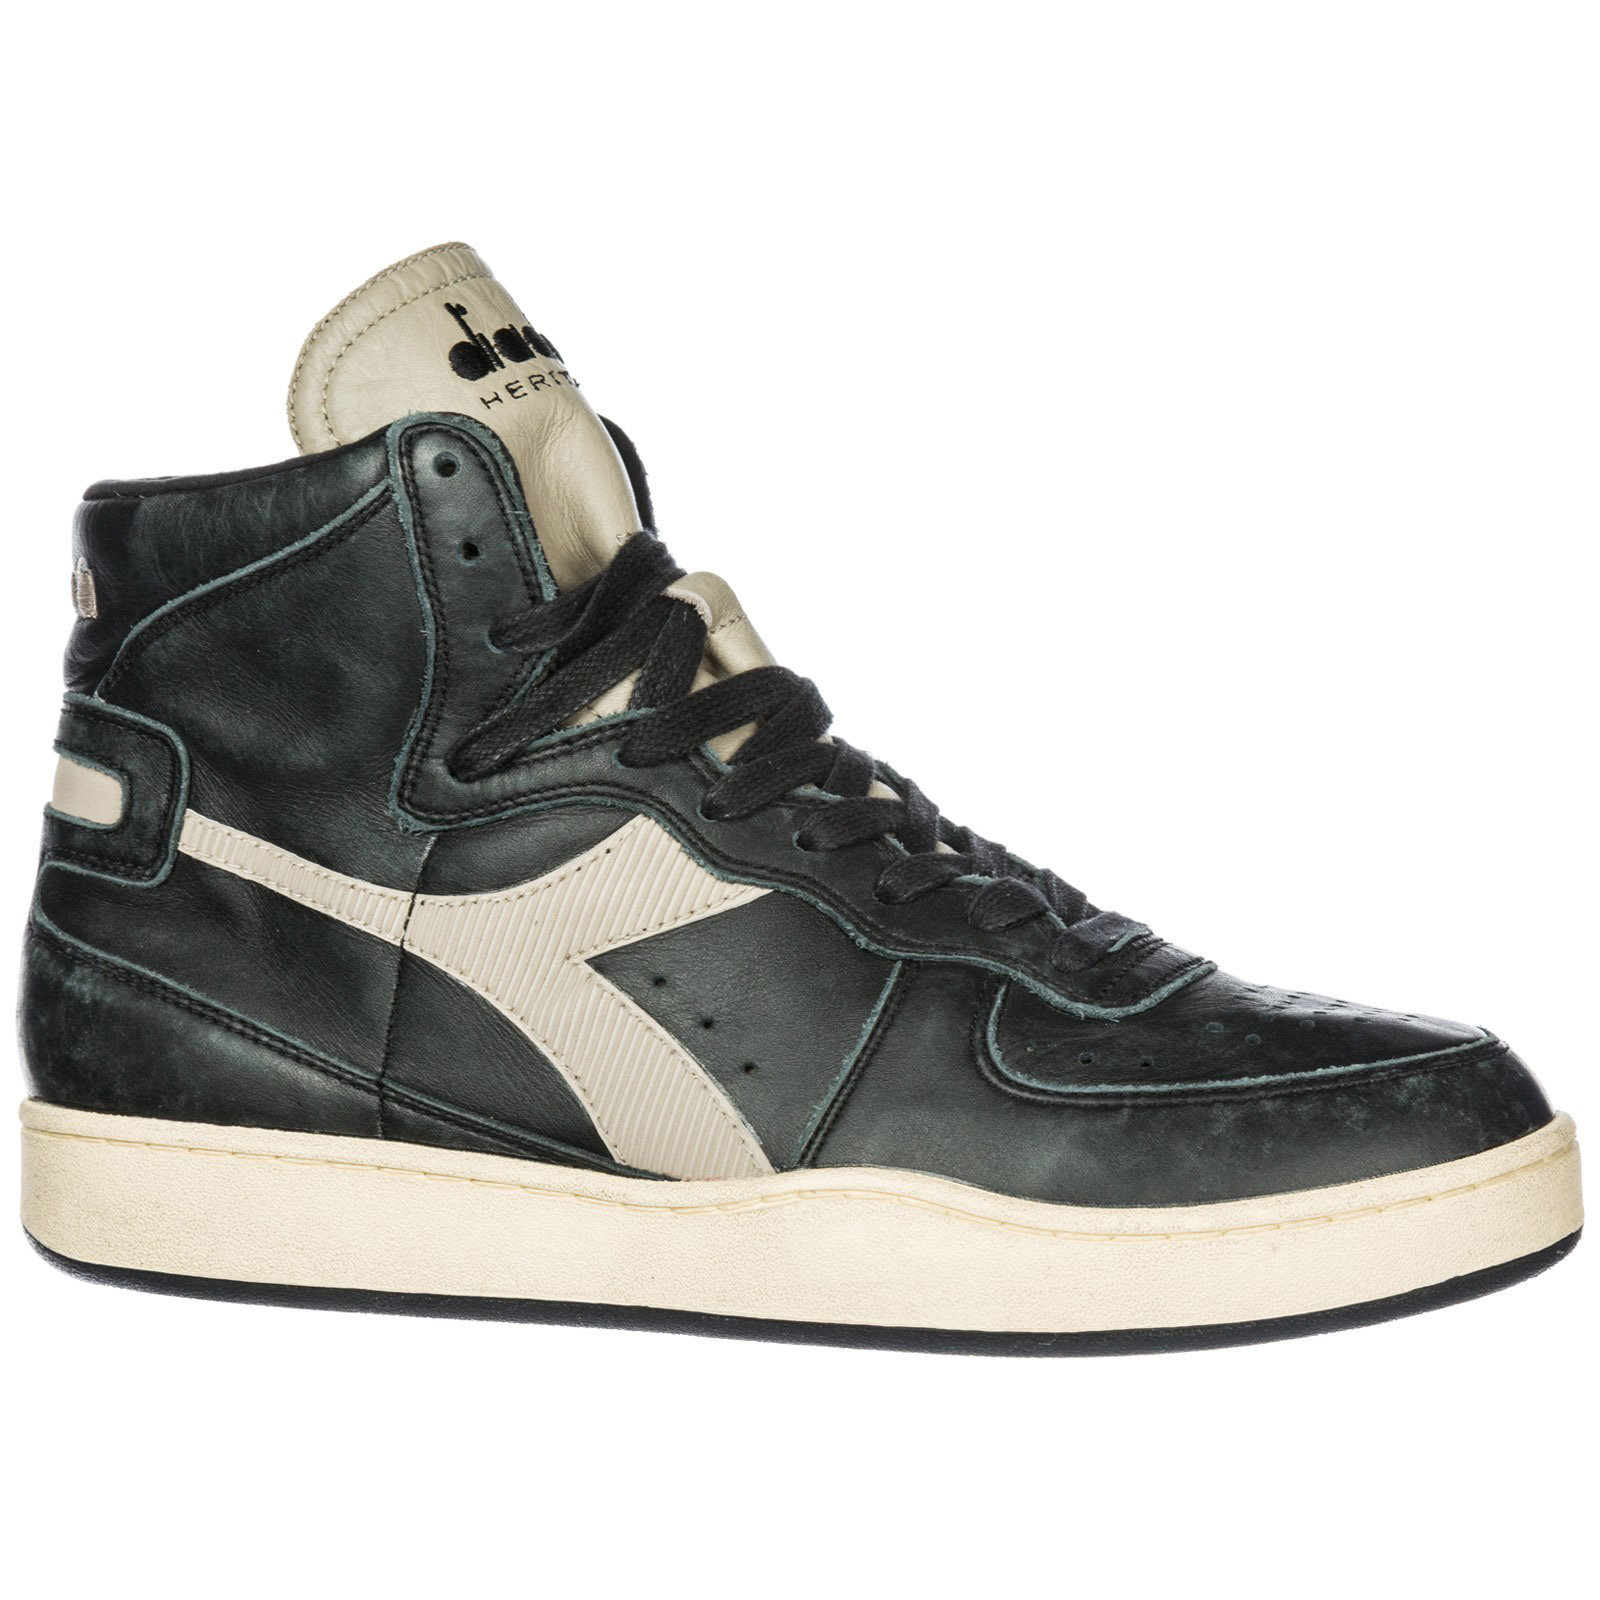 Diadora Heritage Men s shoes high top leather trainers sneakers mi basket ff4e35396e4